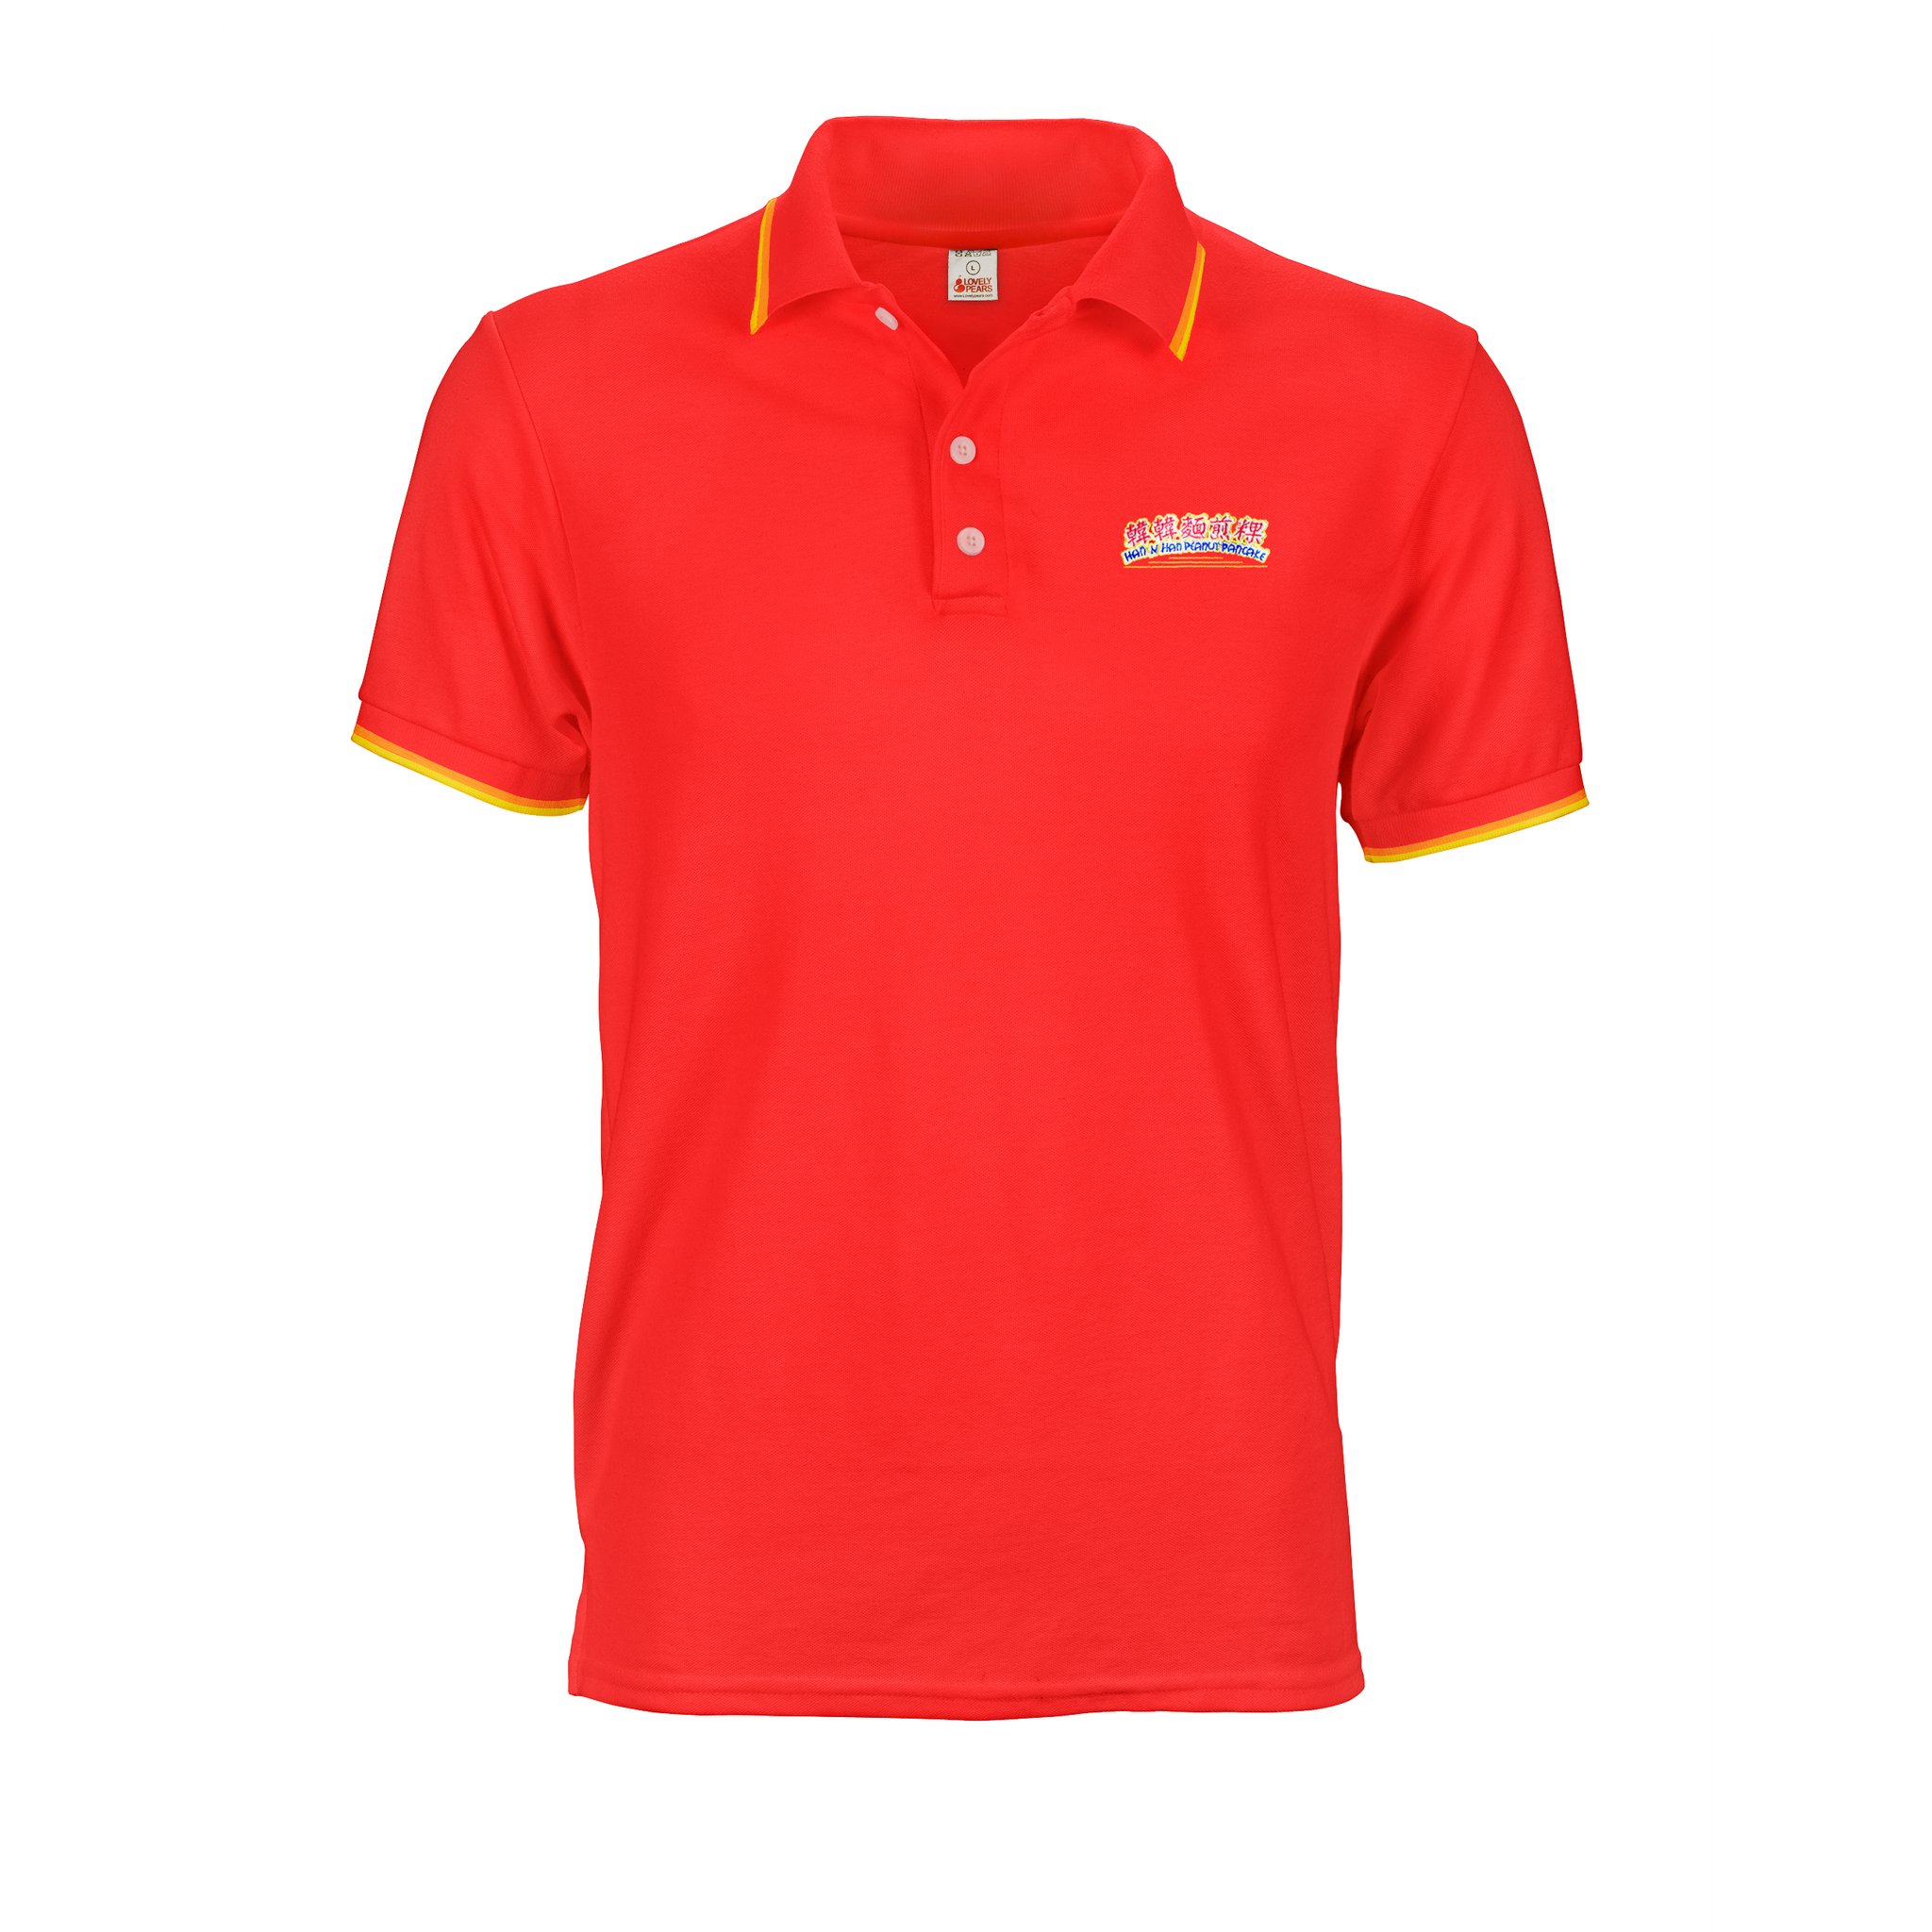 Red Polo Tee with collar and cuff tipping stripes and embroidered logo